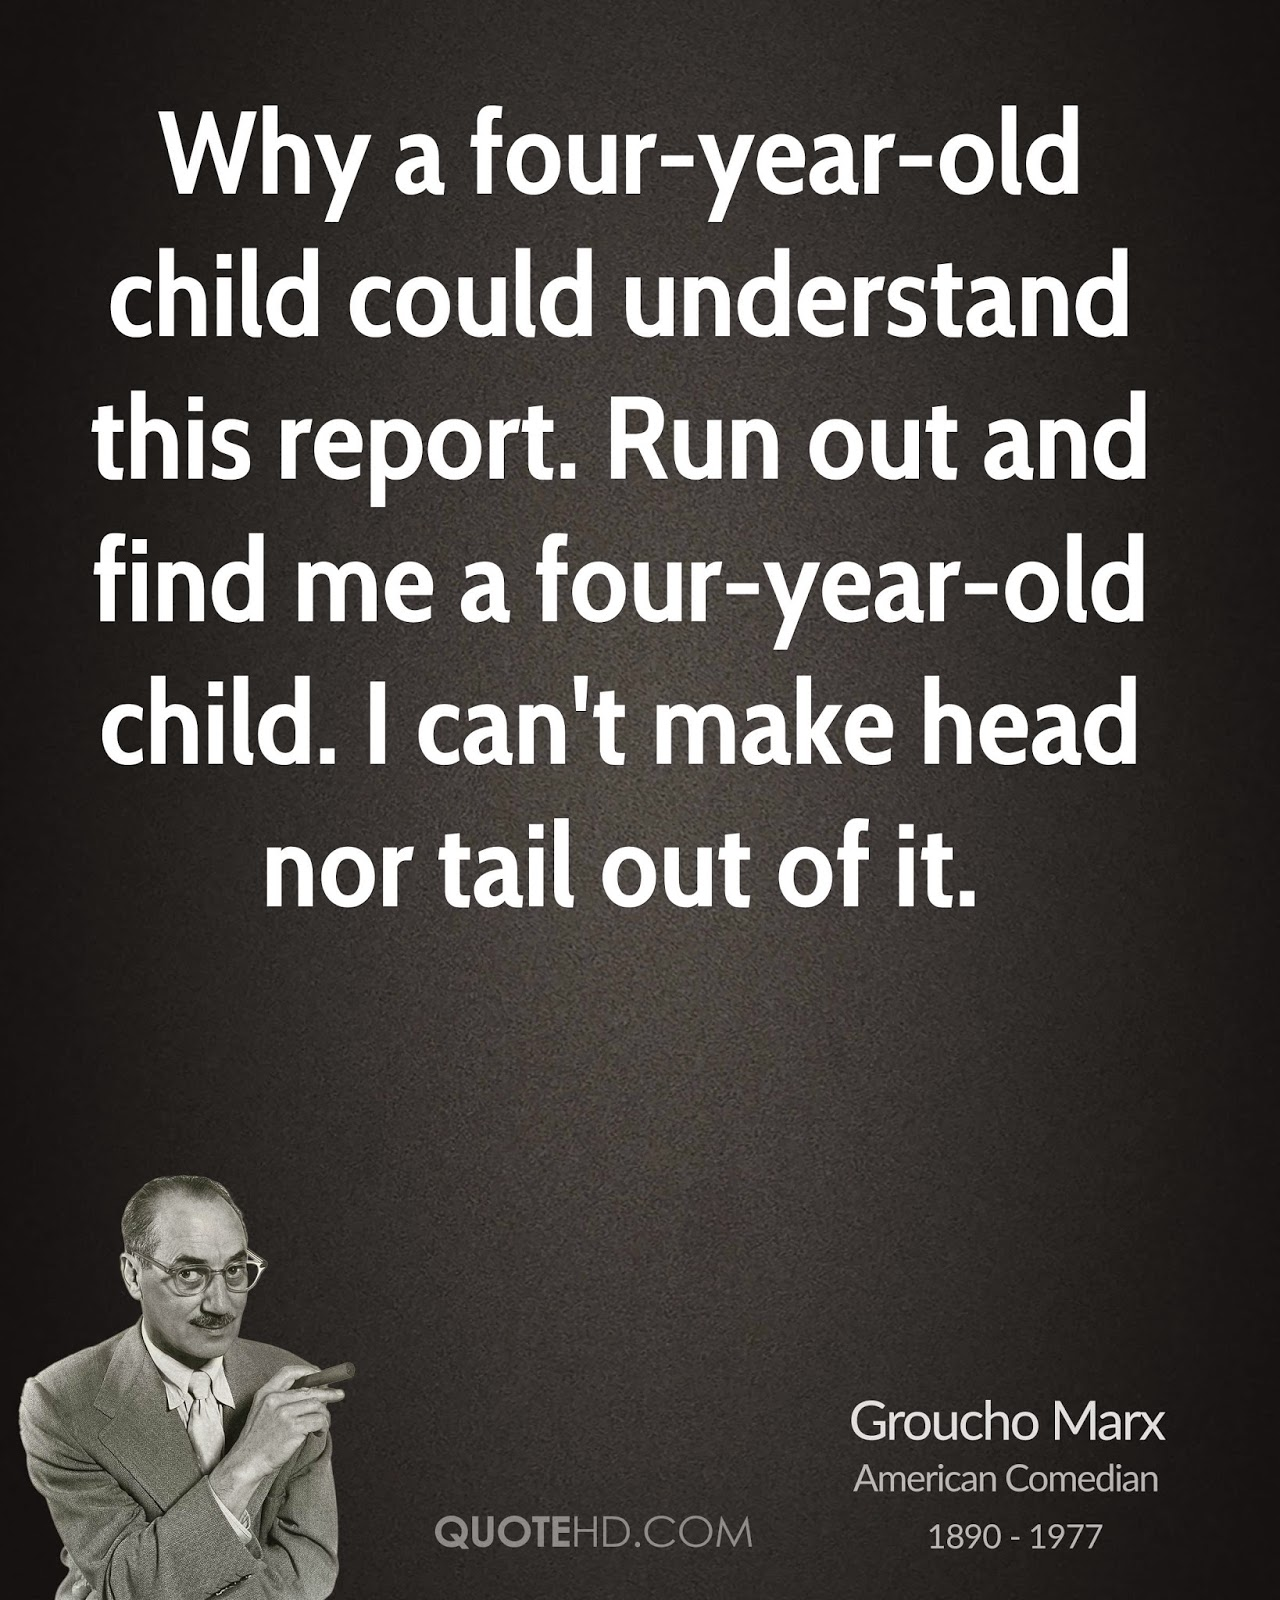 groucho marx 4 year old